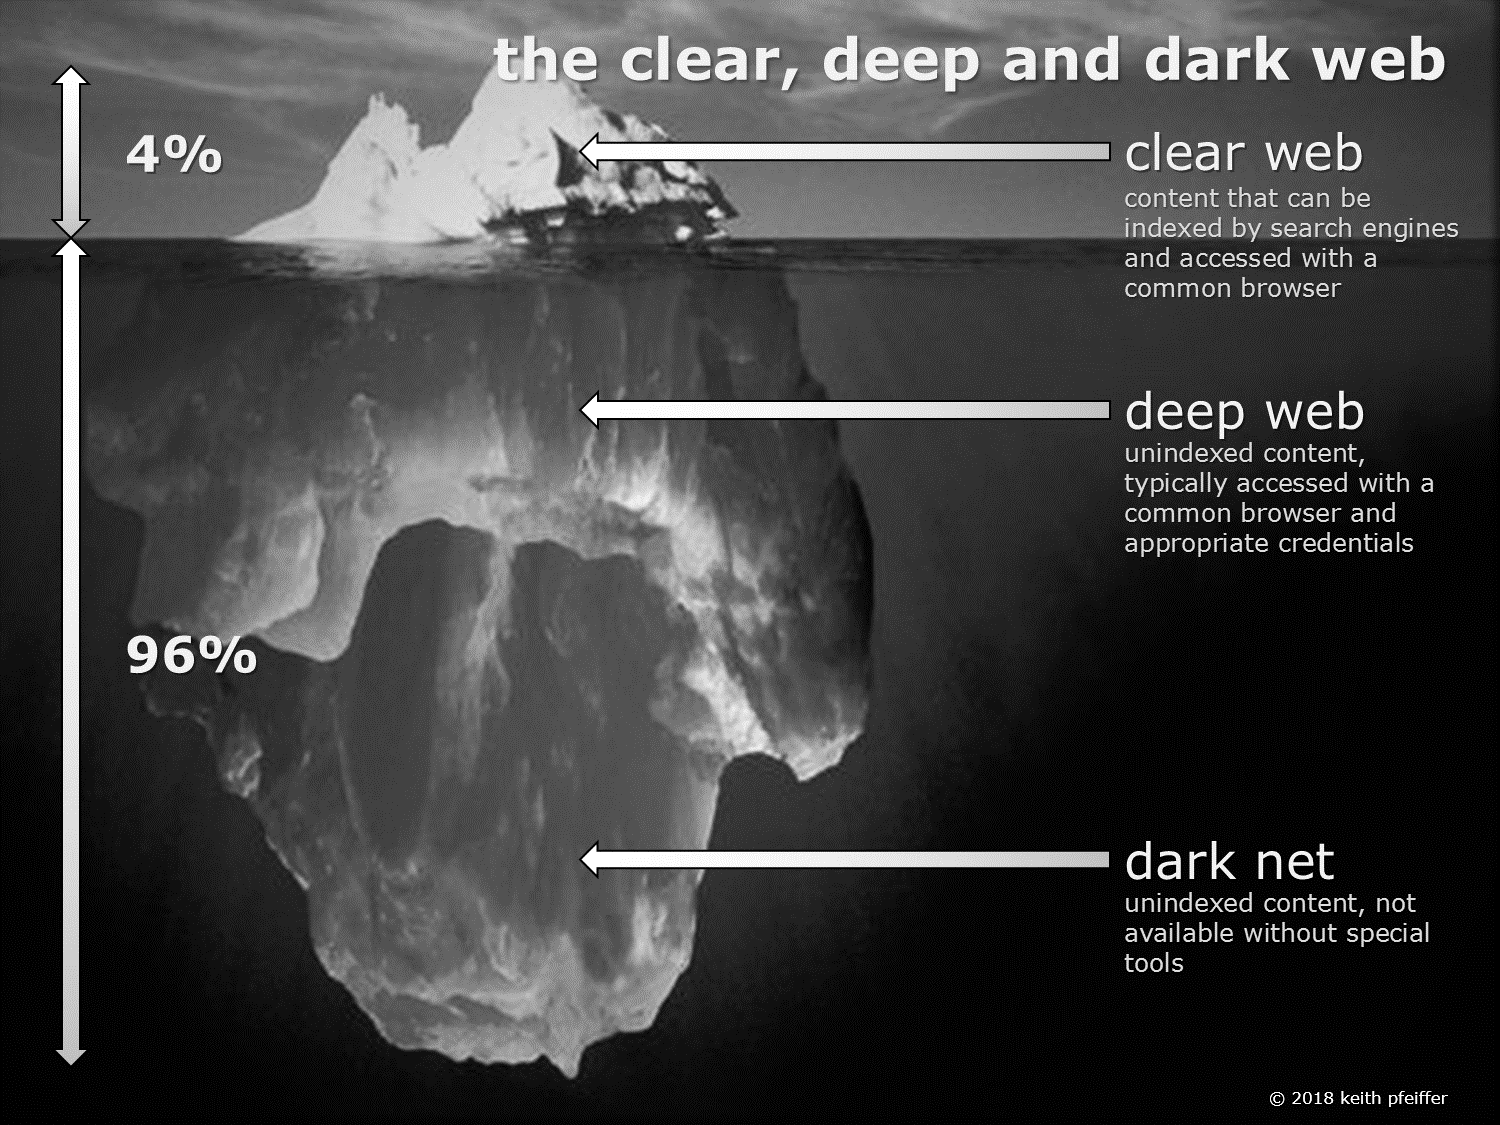 infographic showing clear, deep and dark web